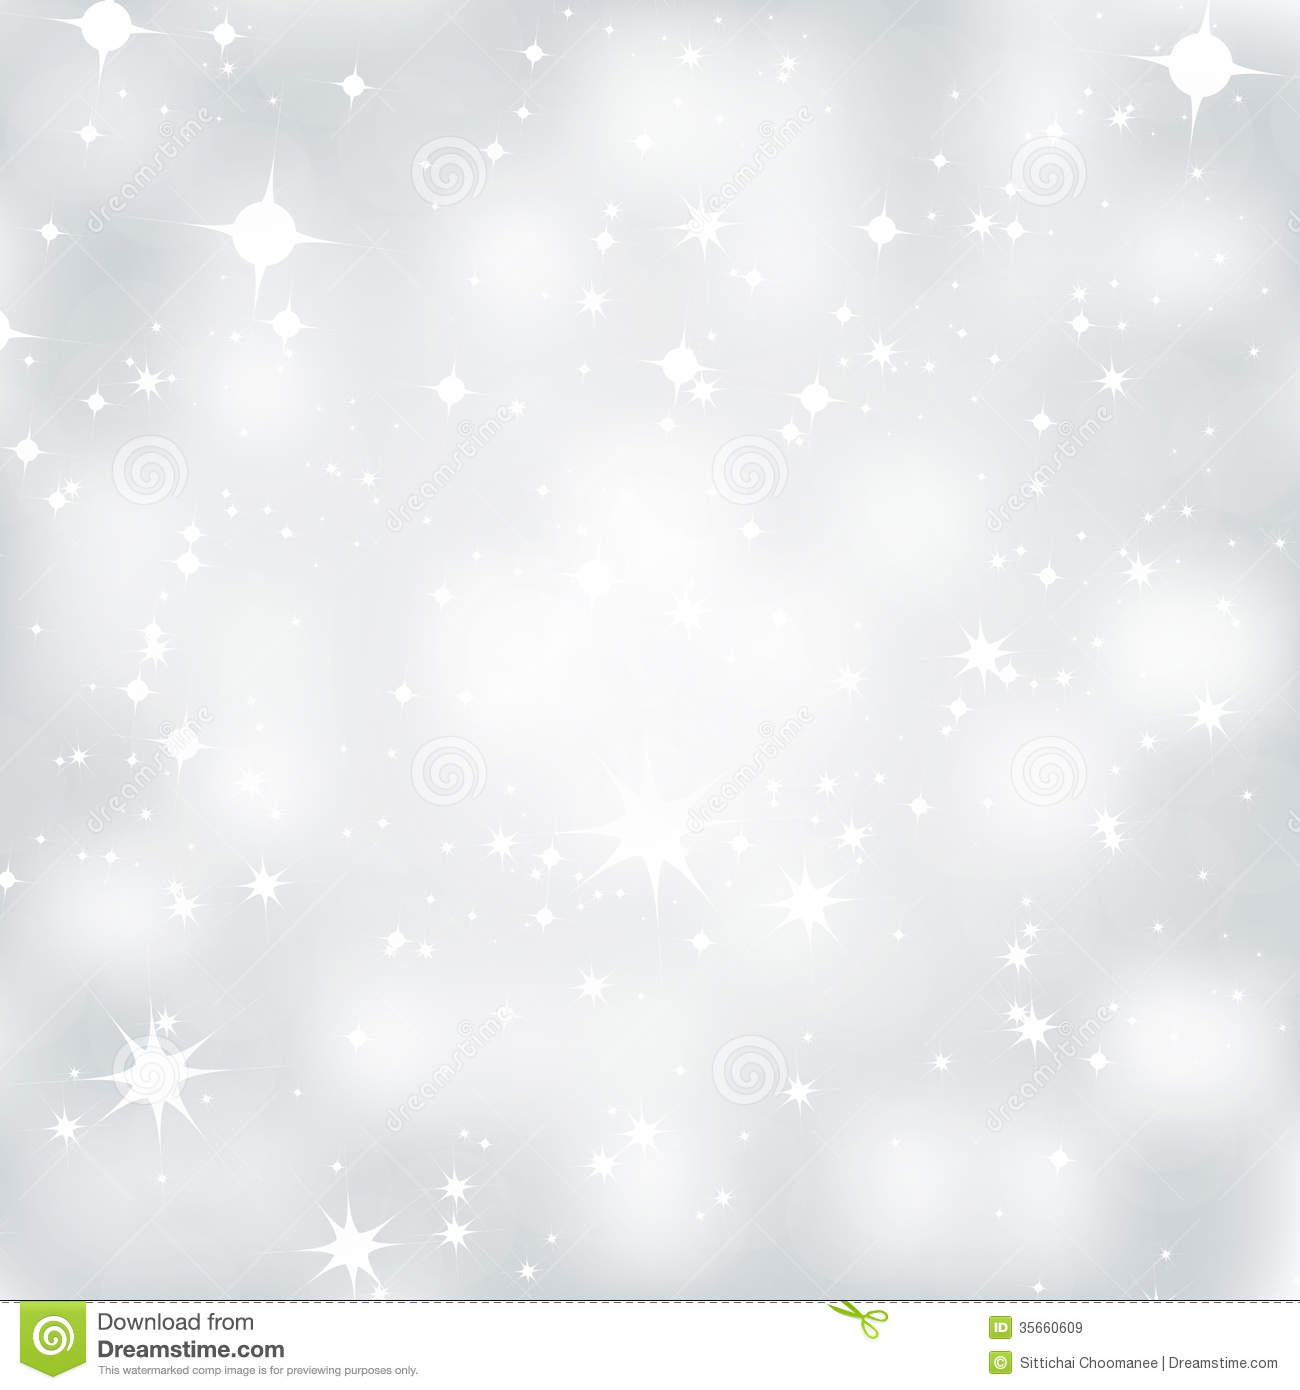 Printable Snowflakes Stock Vector. Illustration Of Greeting - 35660609 - Free Printable Backgrounds